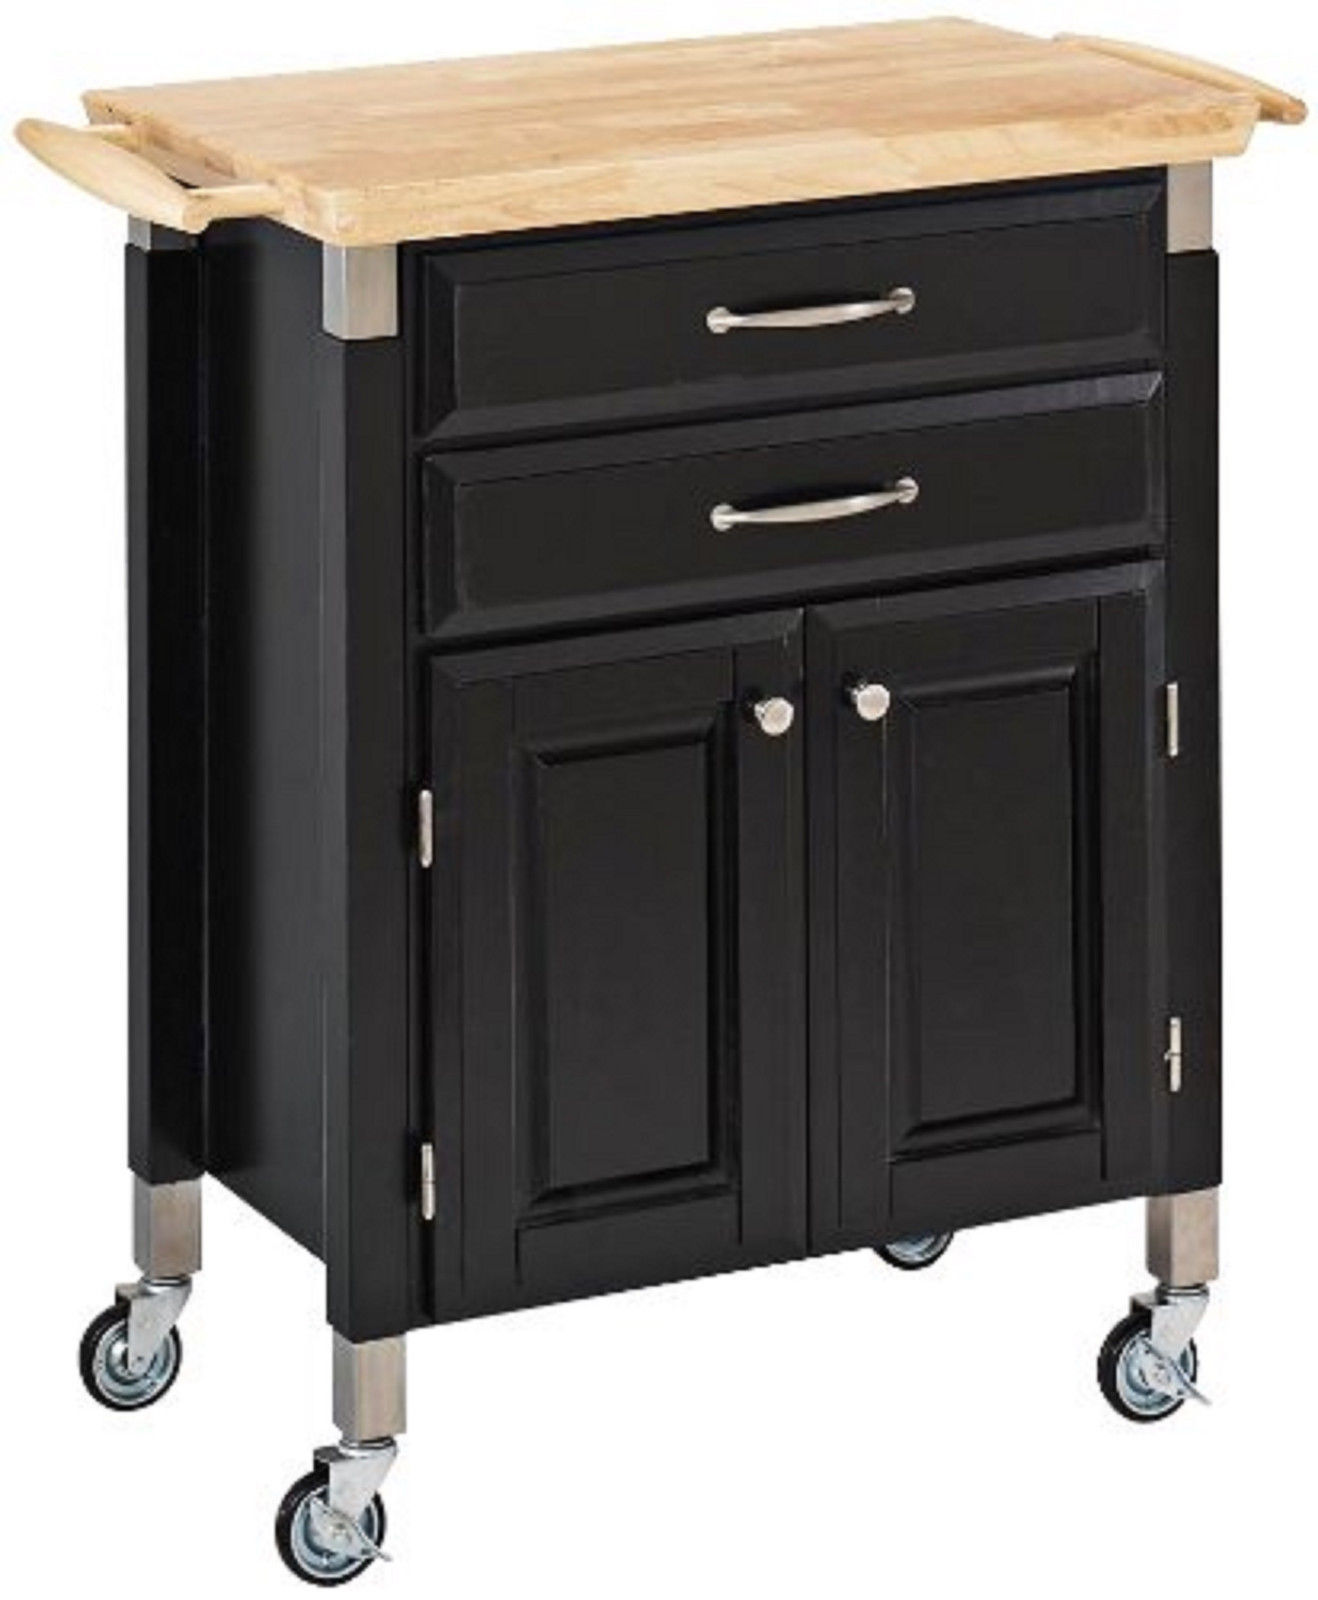 Mobile Kitchen Island Nz Home Design Inspiration